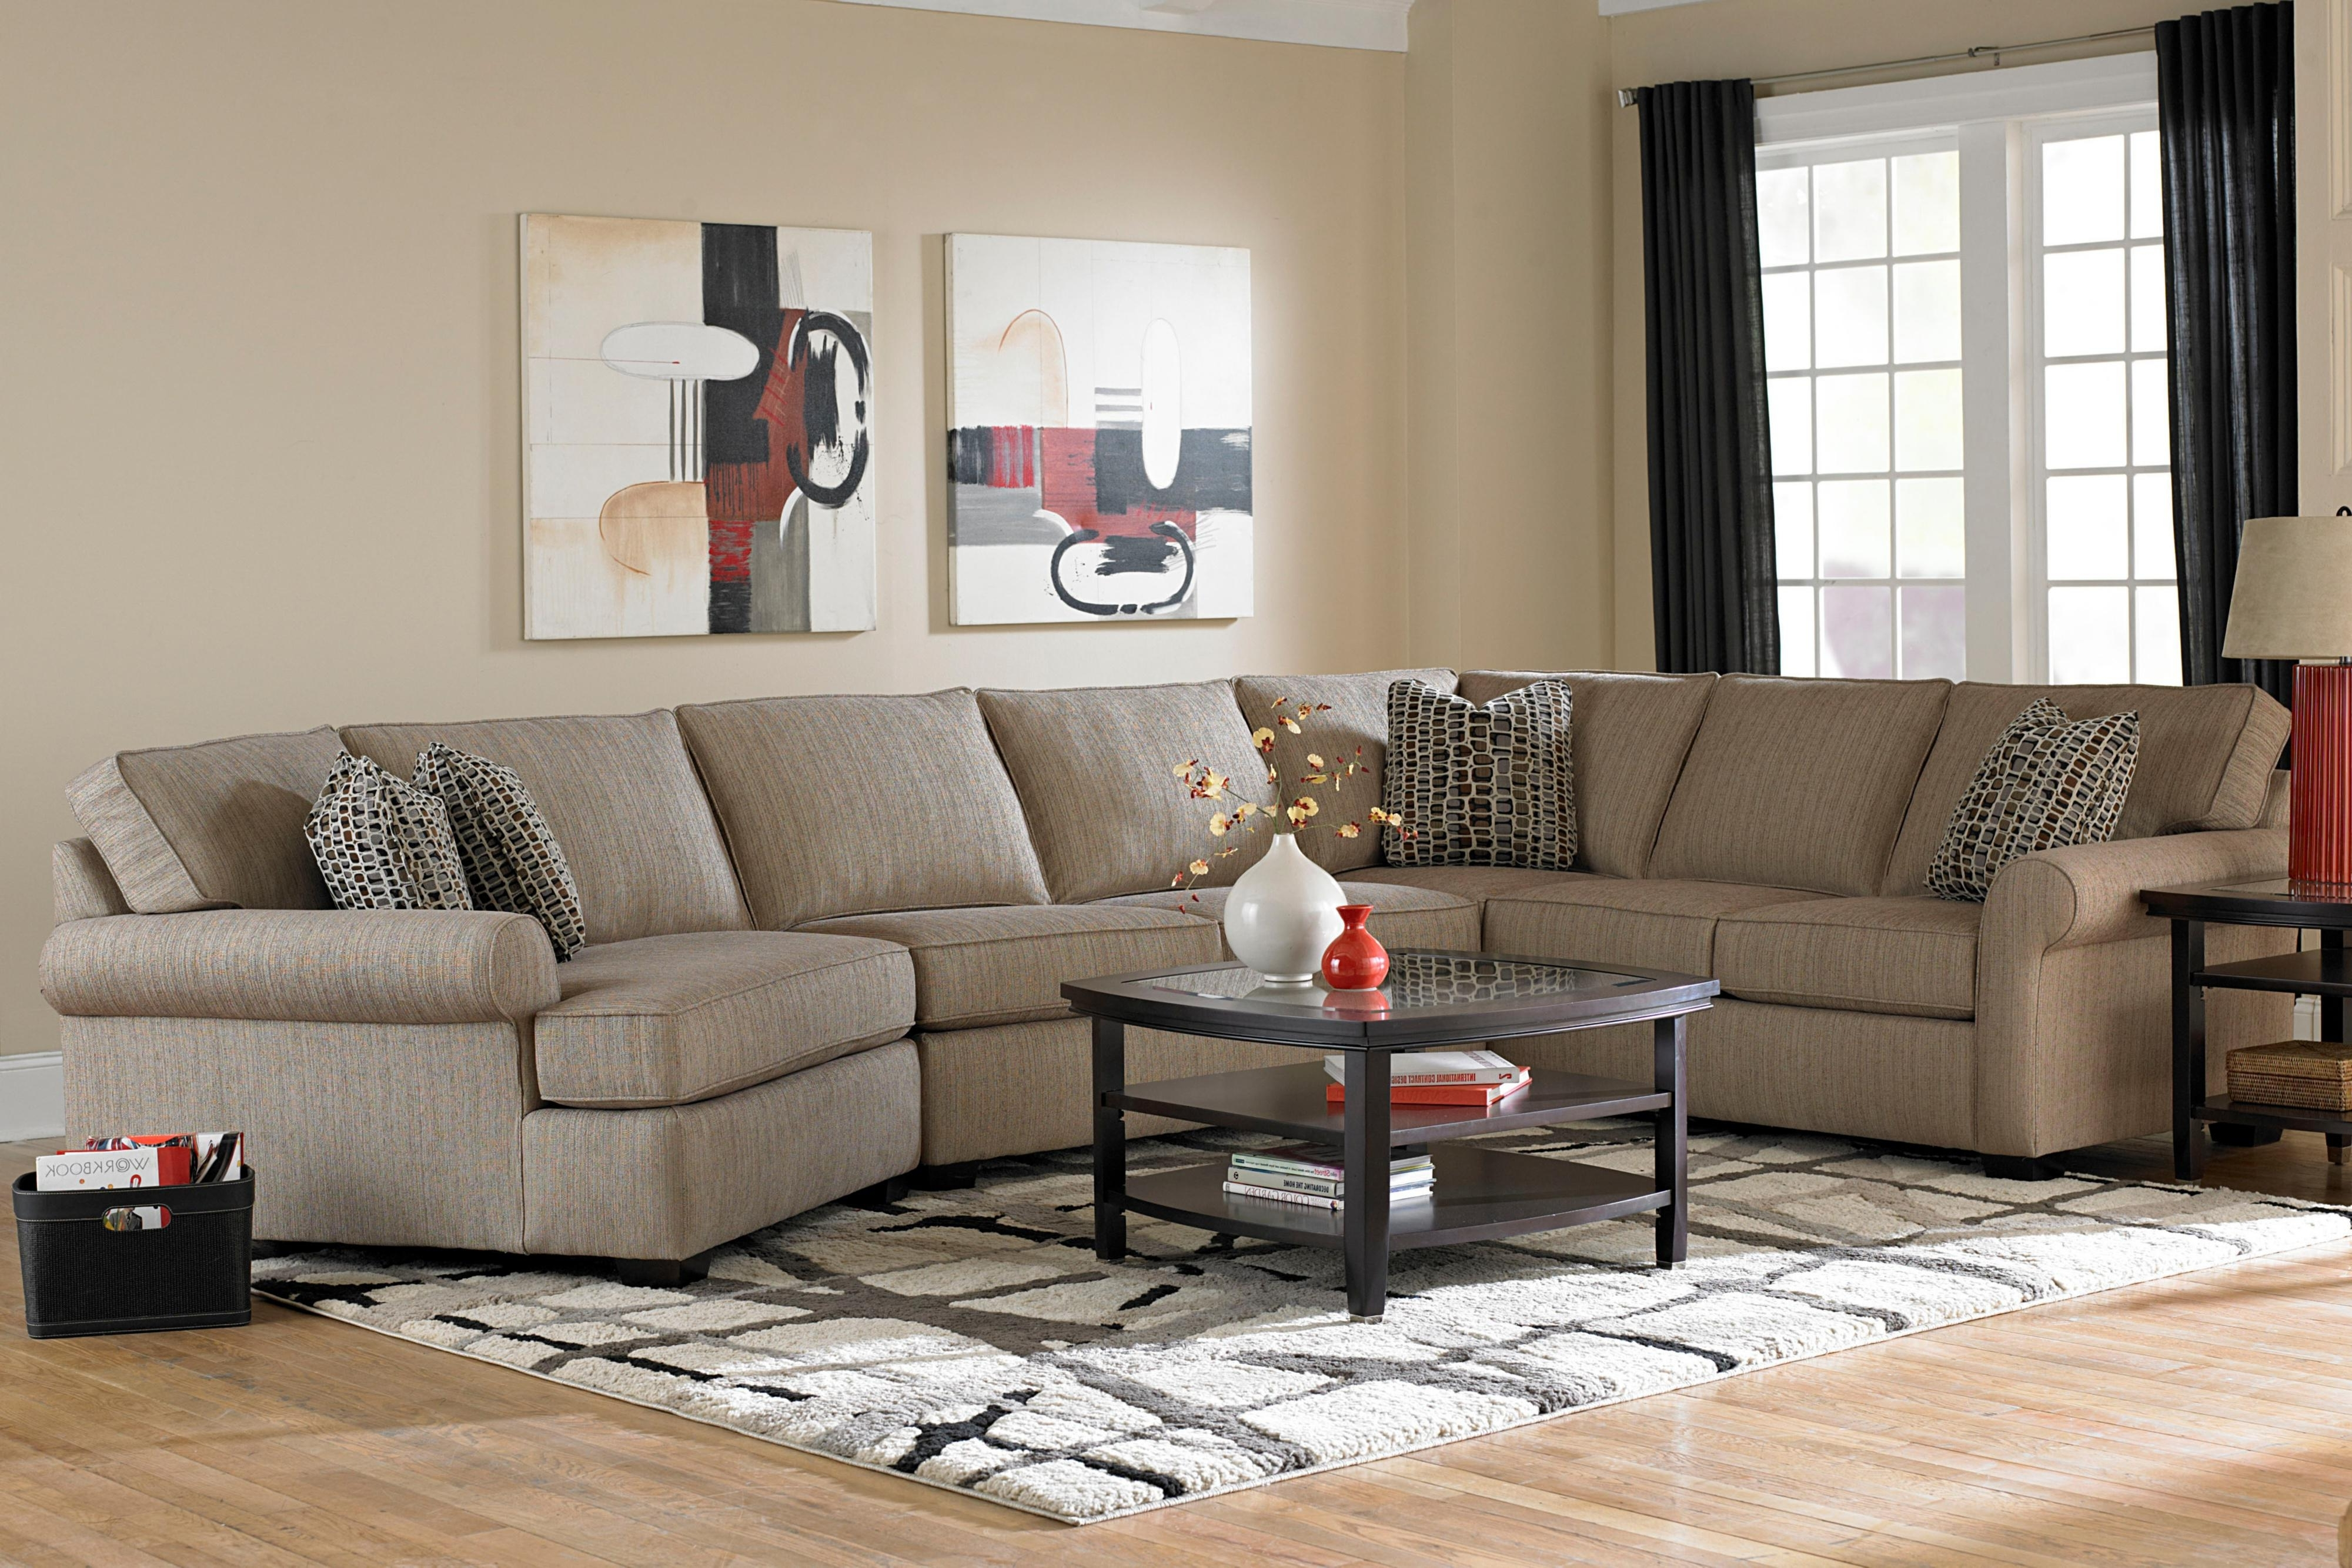 Well Liked Broyhill Furniture Ethan Transitional Sectional Sofa With Right In Johnson City Tn Sectional Sofas (View 19 of 20)